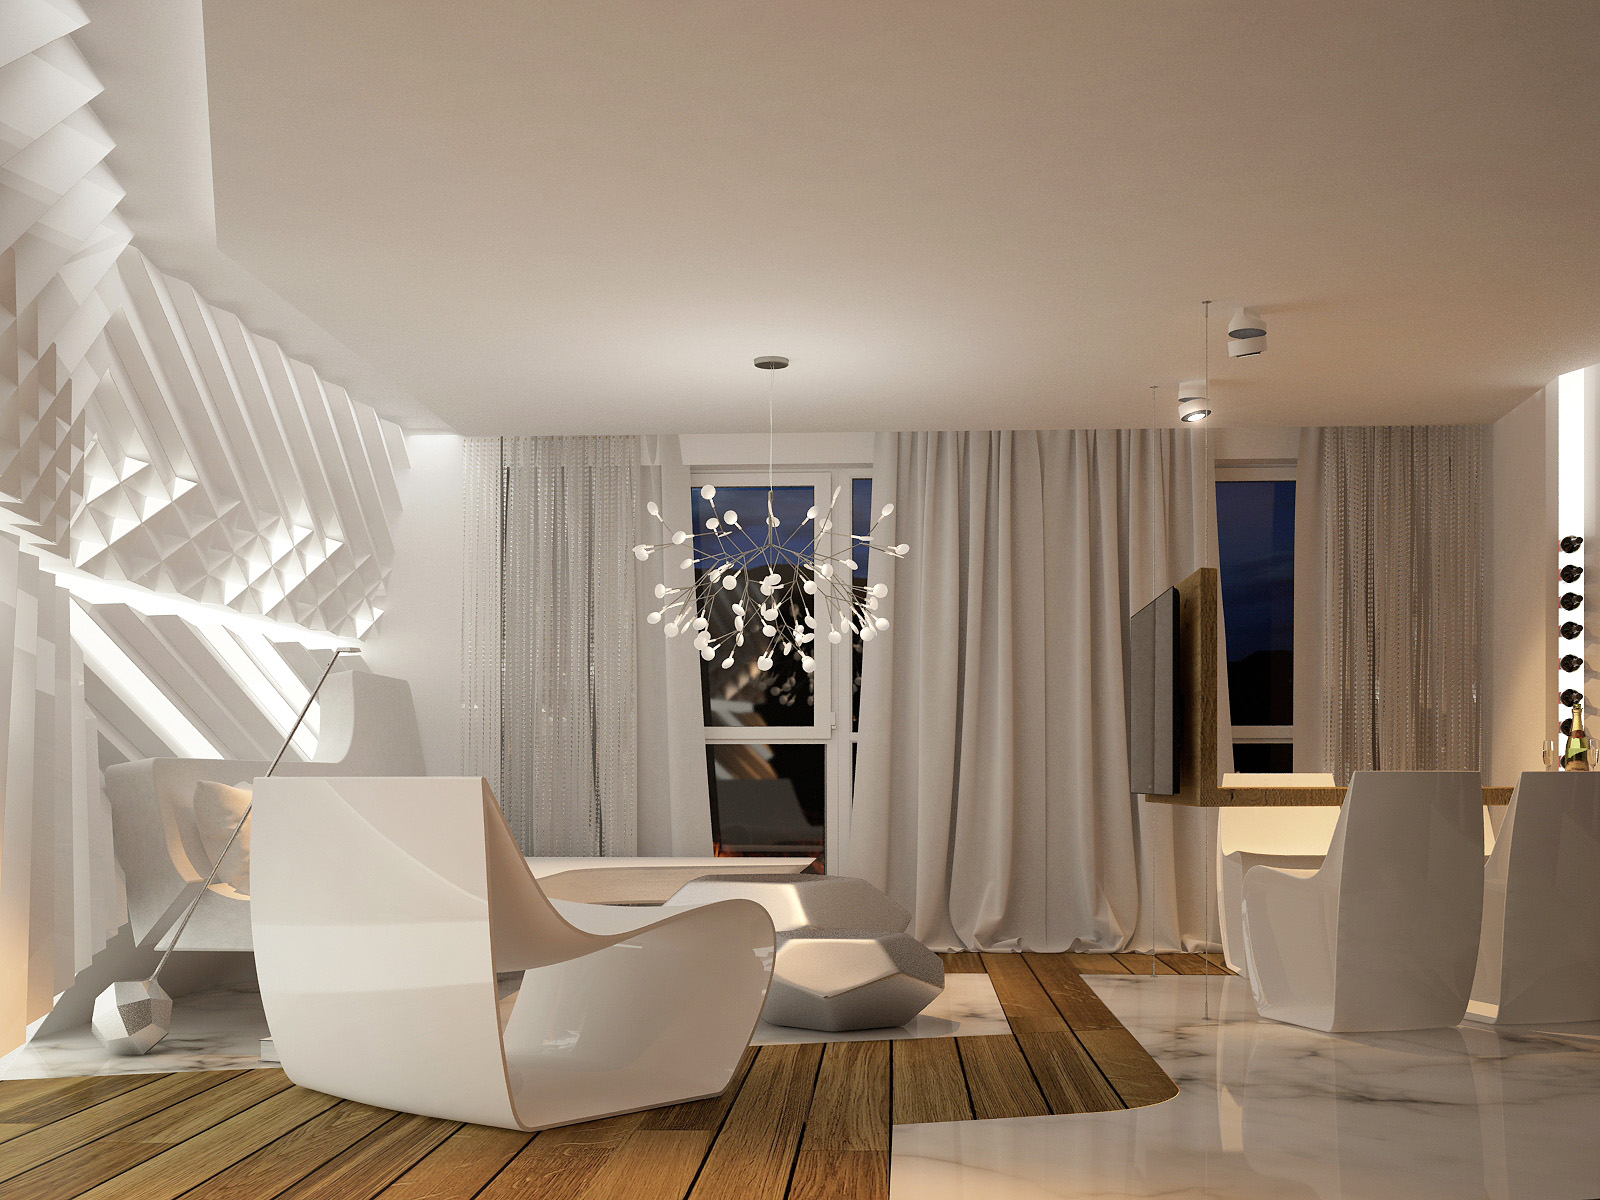 Creative Apartment Designs Ideas With Cute and Sweet Decor - RooHome